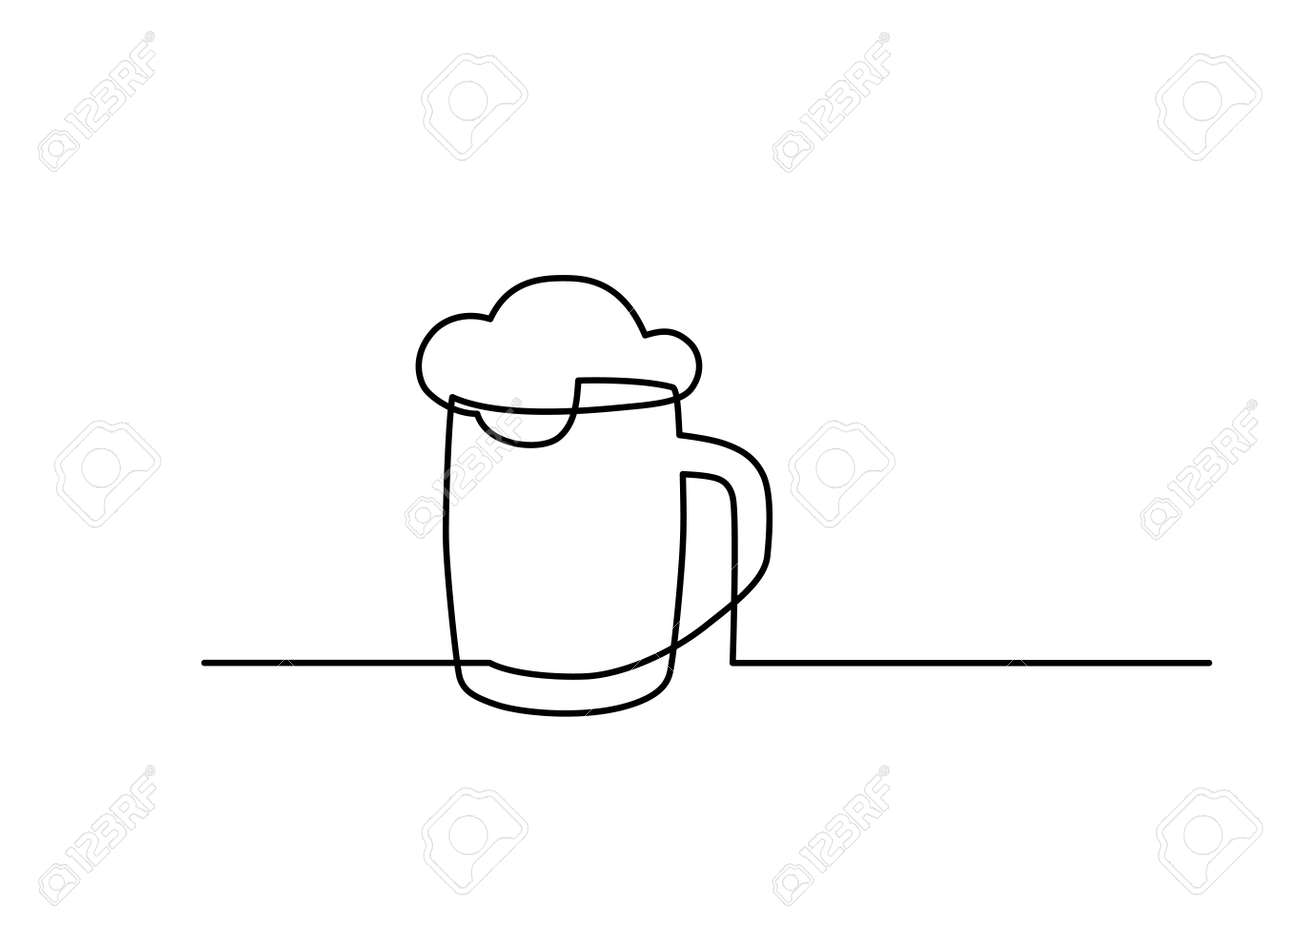 Details About Adp 76722700 Unit Heater Control Circuit Board Mug Line Drawing Wiring Diagrams Continuous Of Beer Vector Illustration Royalty Rh 123rf Com Coffee